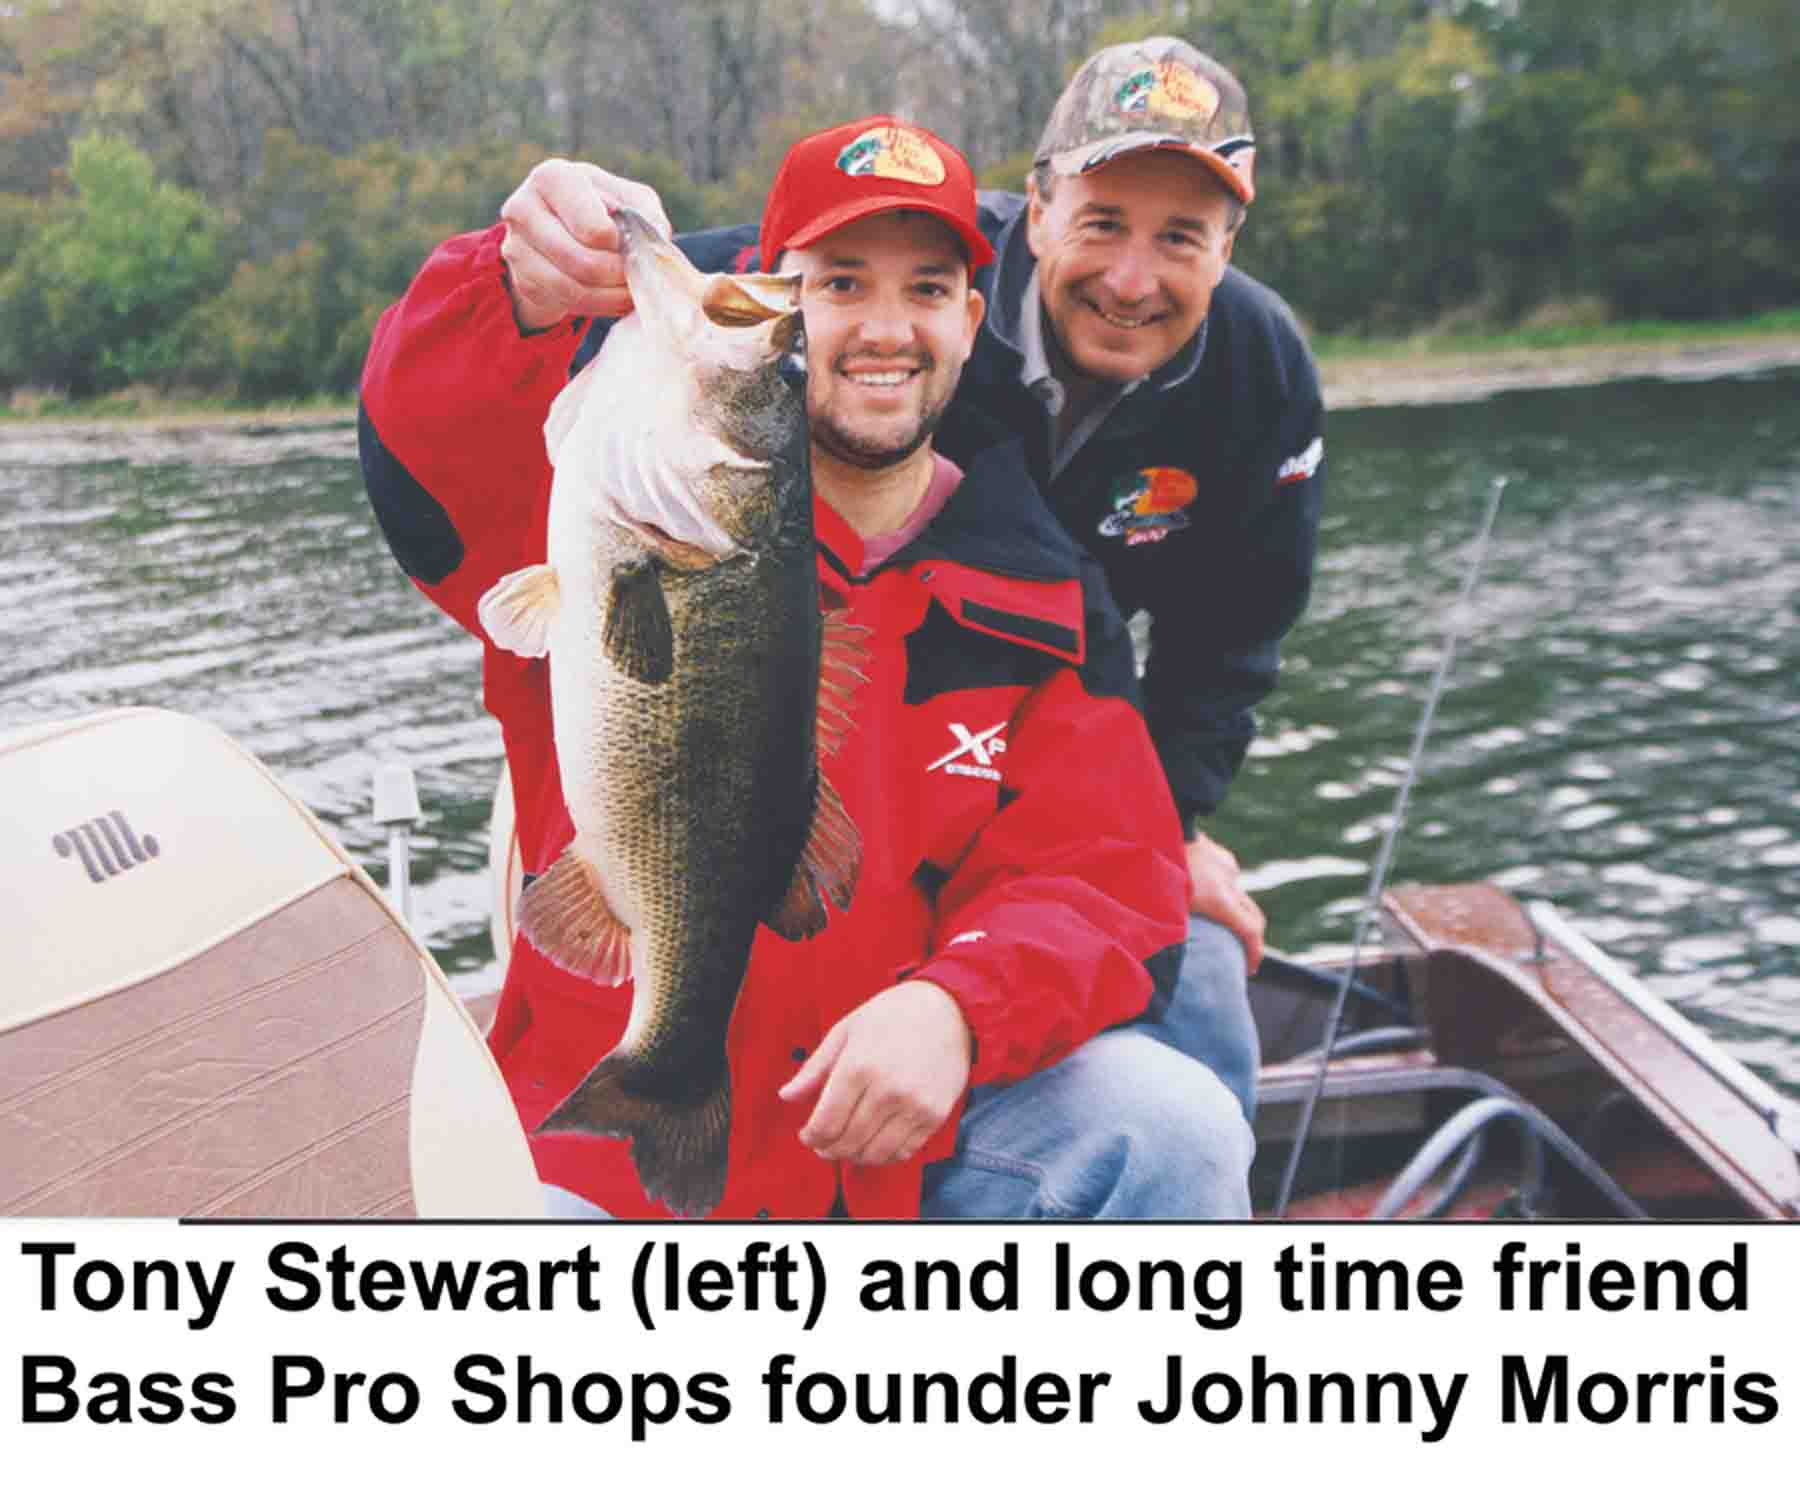 Tony Stewart & Johnny Morris Bass Pro Founder